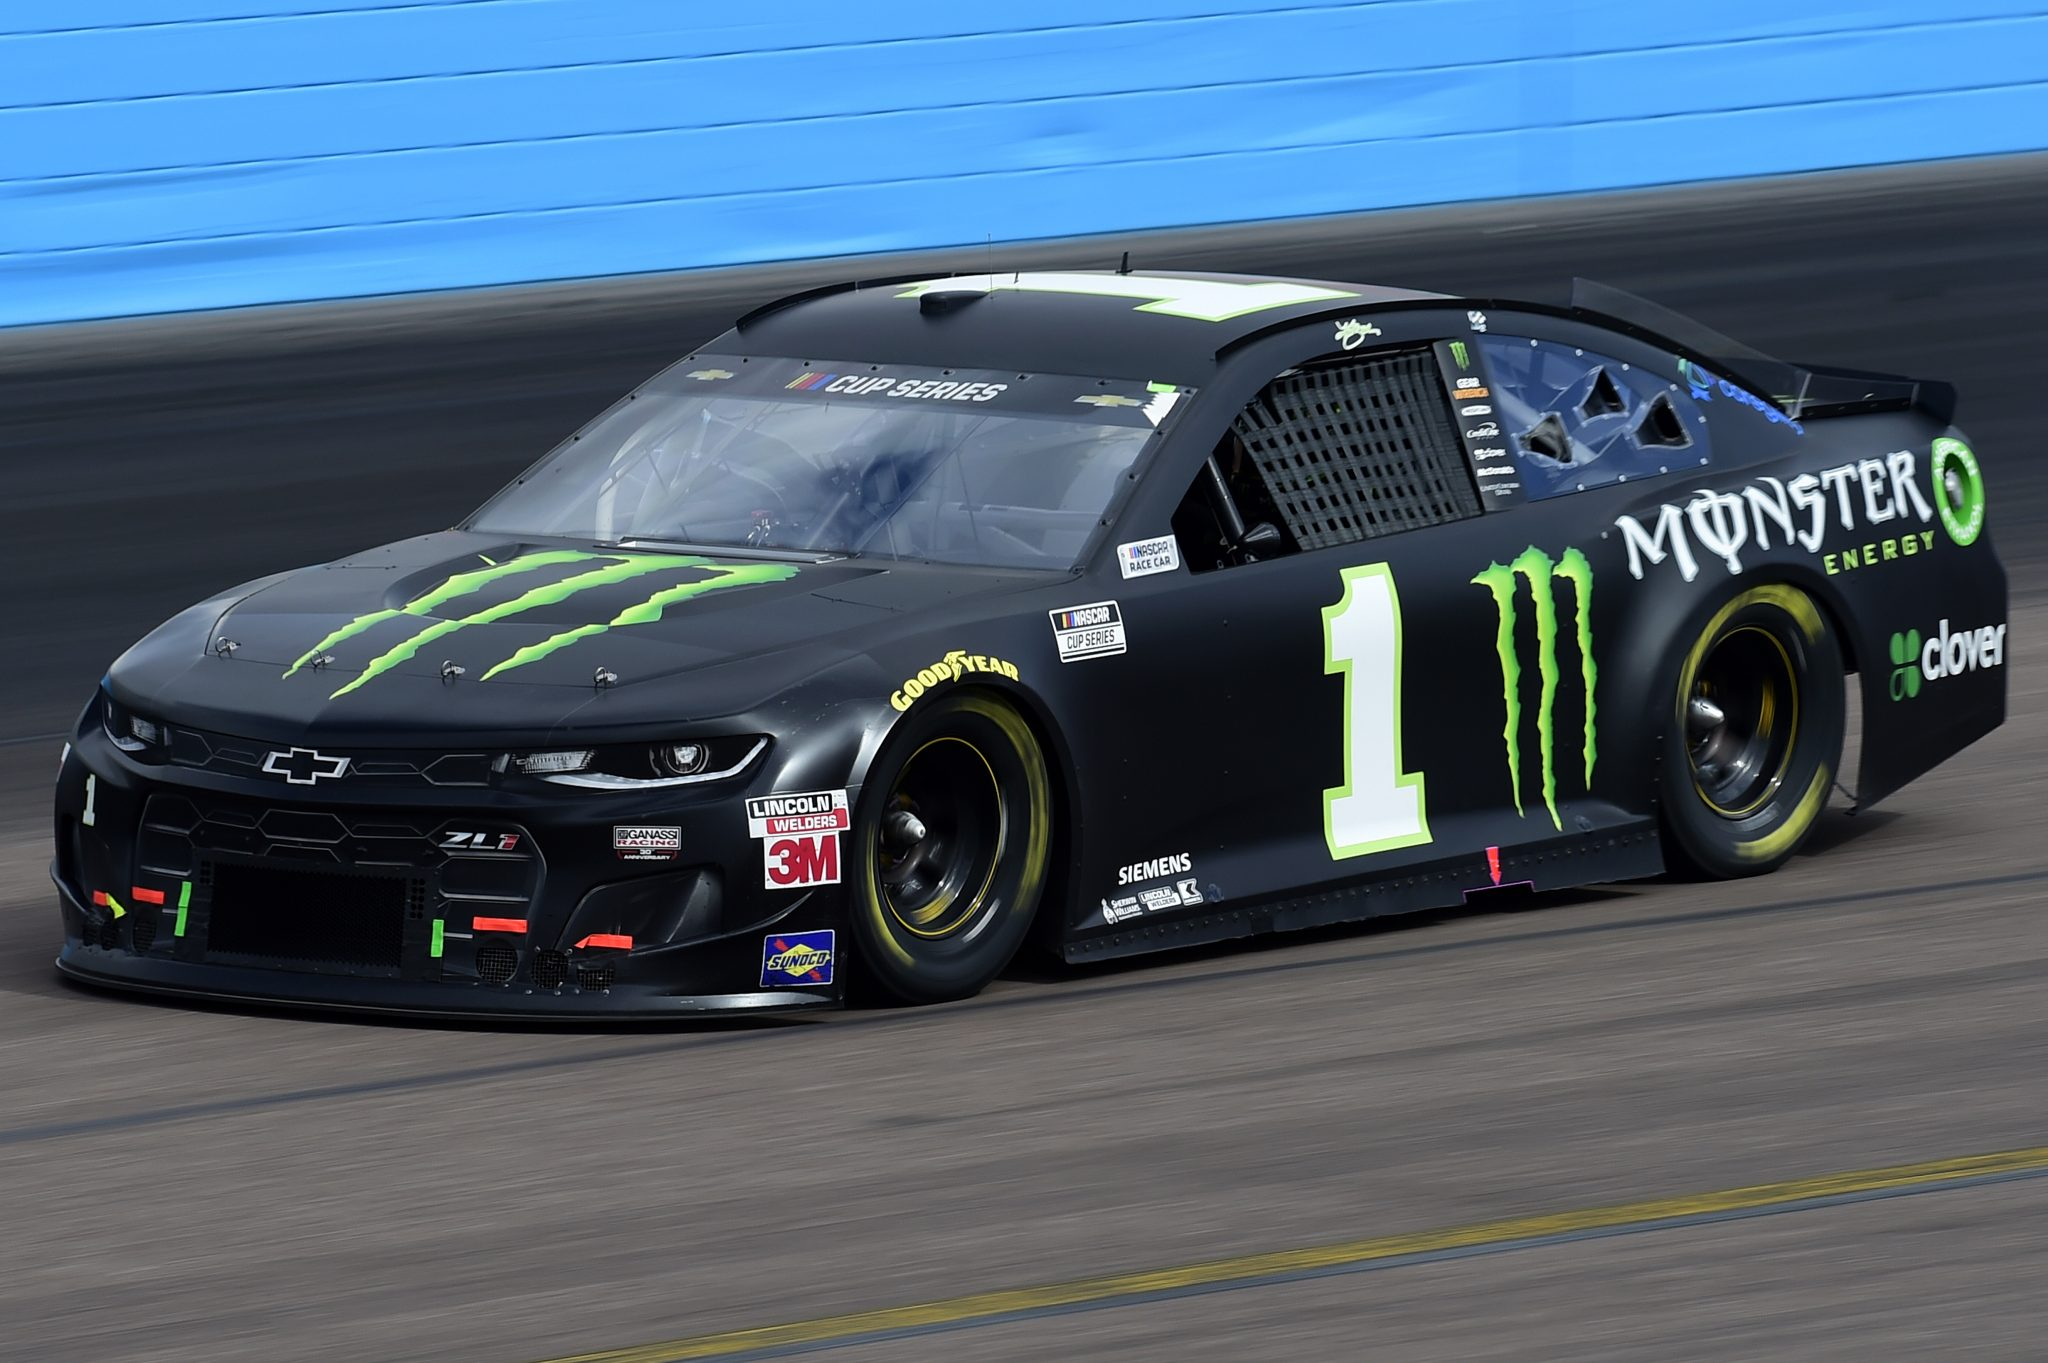 AVONDALE, ARIZONA - NOVEMBER 08: Kurt Busch, driver of the #1 Monster Energy Chevrolet, drives during the NASCAR Cup Series Season Finale 500 at Phoenix Raceway on November 08, 2020 in Avondale, Arizona. (Photo by Jared C. Tilton/Getty Images) | Getty Images